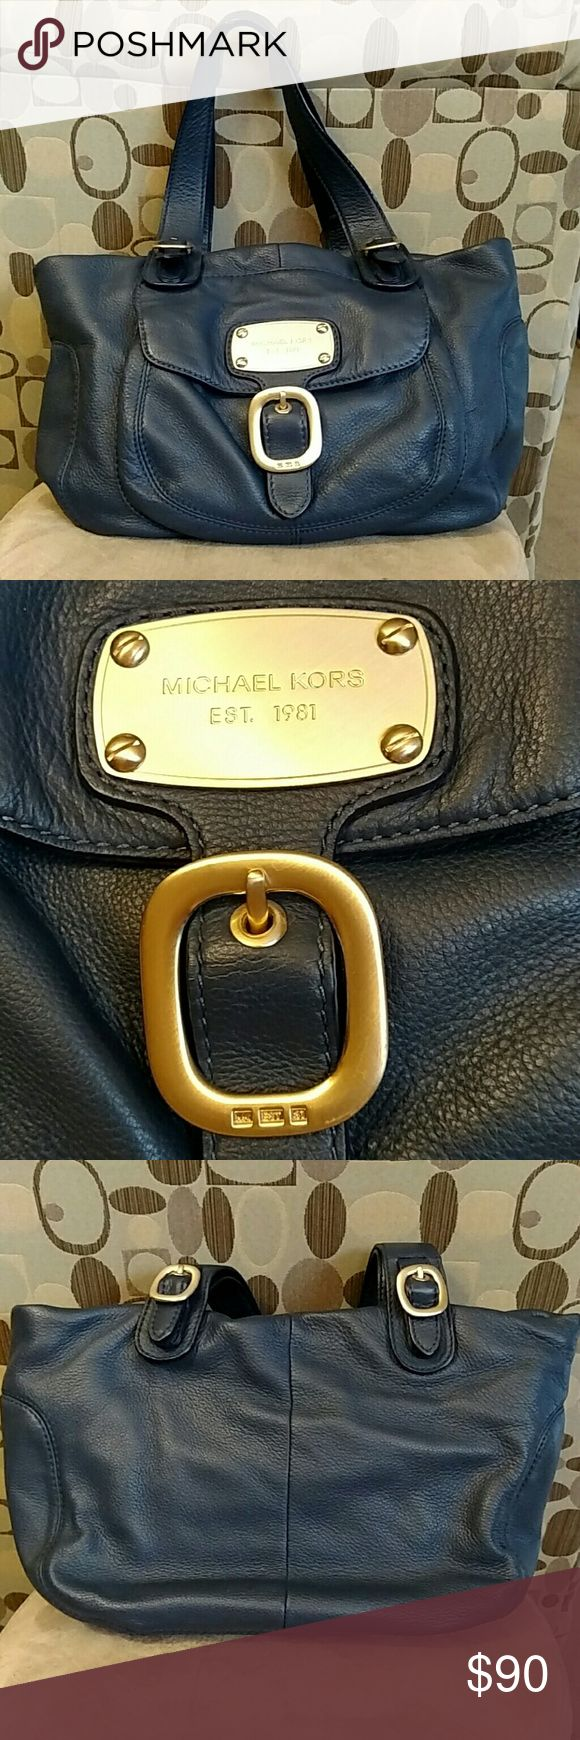 Michael Kors navy slouchy hobo handbag This is been my go-to bag so often, but it is still in great condition. The only real imperfections are on the straps?, shown the last picture. The gold hardware has almost no wear. This is a true navy color. Full of pockets (1 outside snap, 4 inside slip, 1 inside zip) and the top zips closed.  17x10x6 Michael Kors Bags Hobos